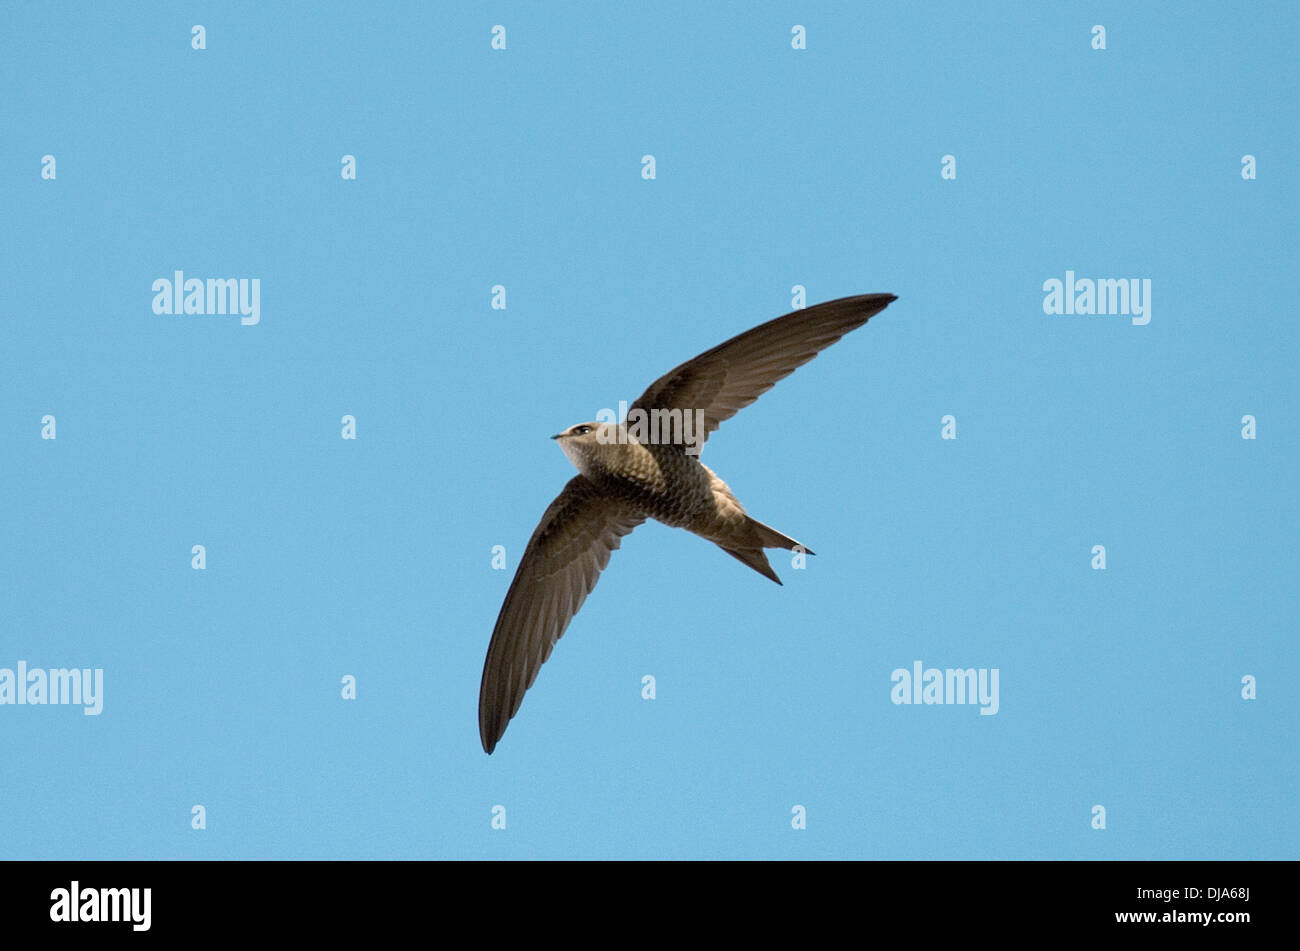 Pallid Swift - Apus pallidus - Stock Image